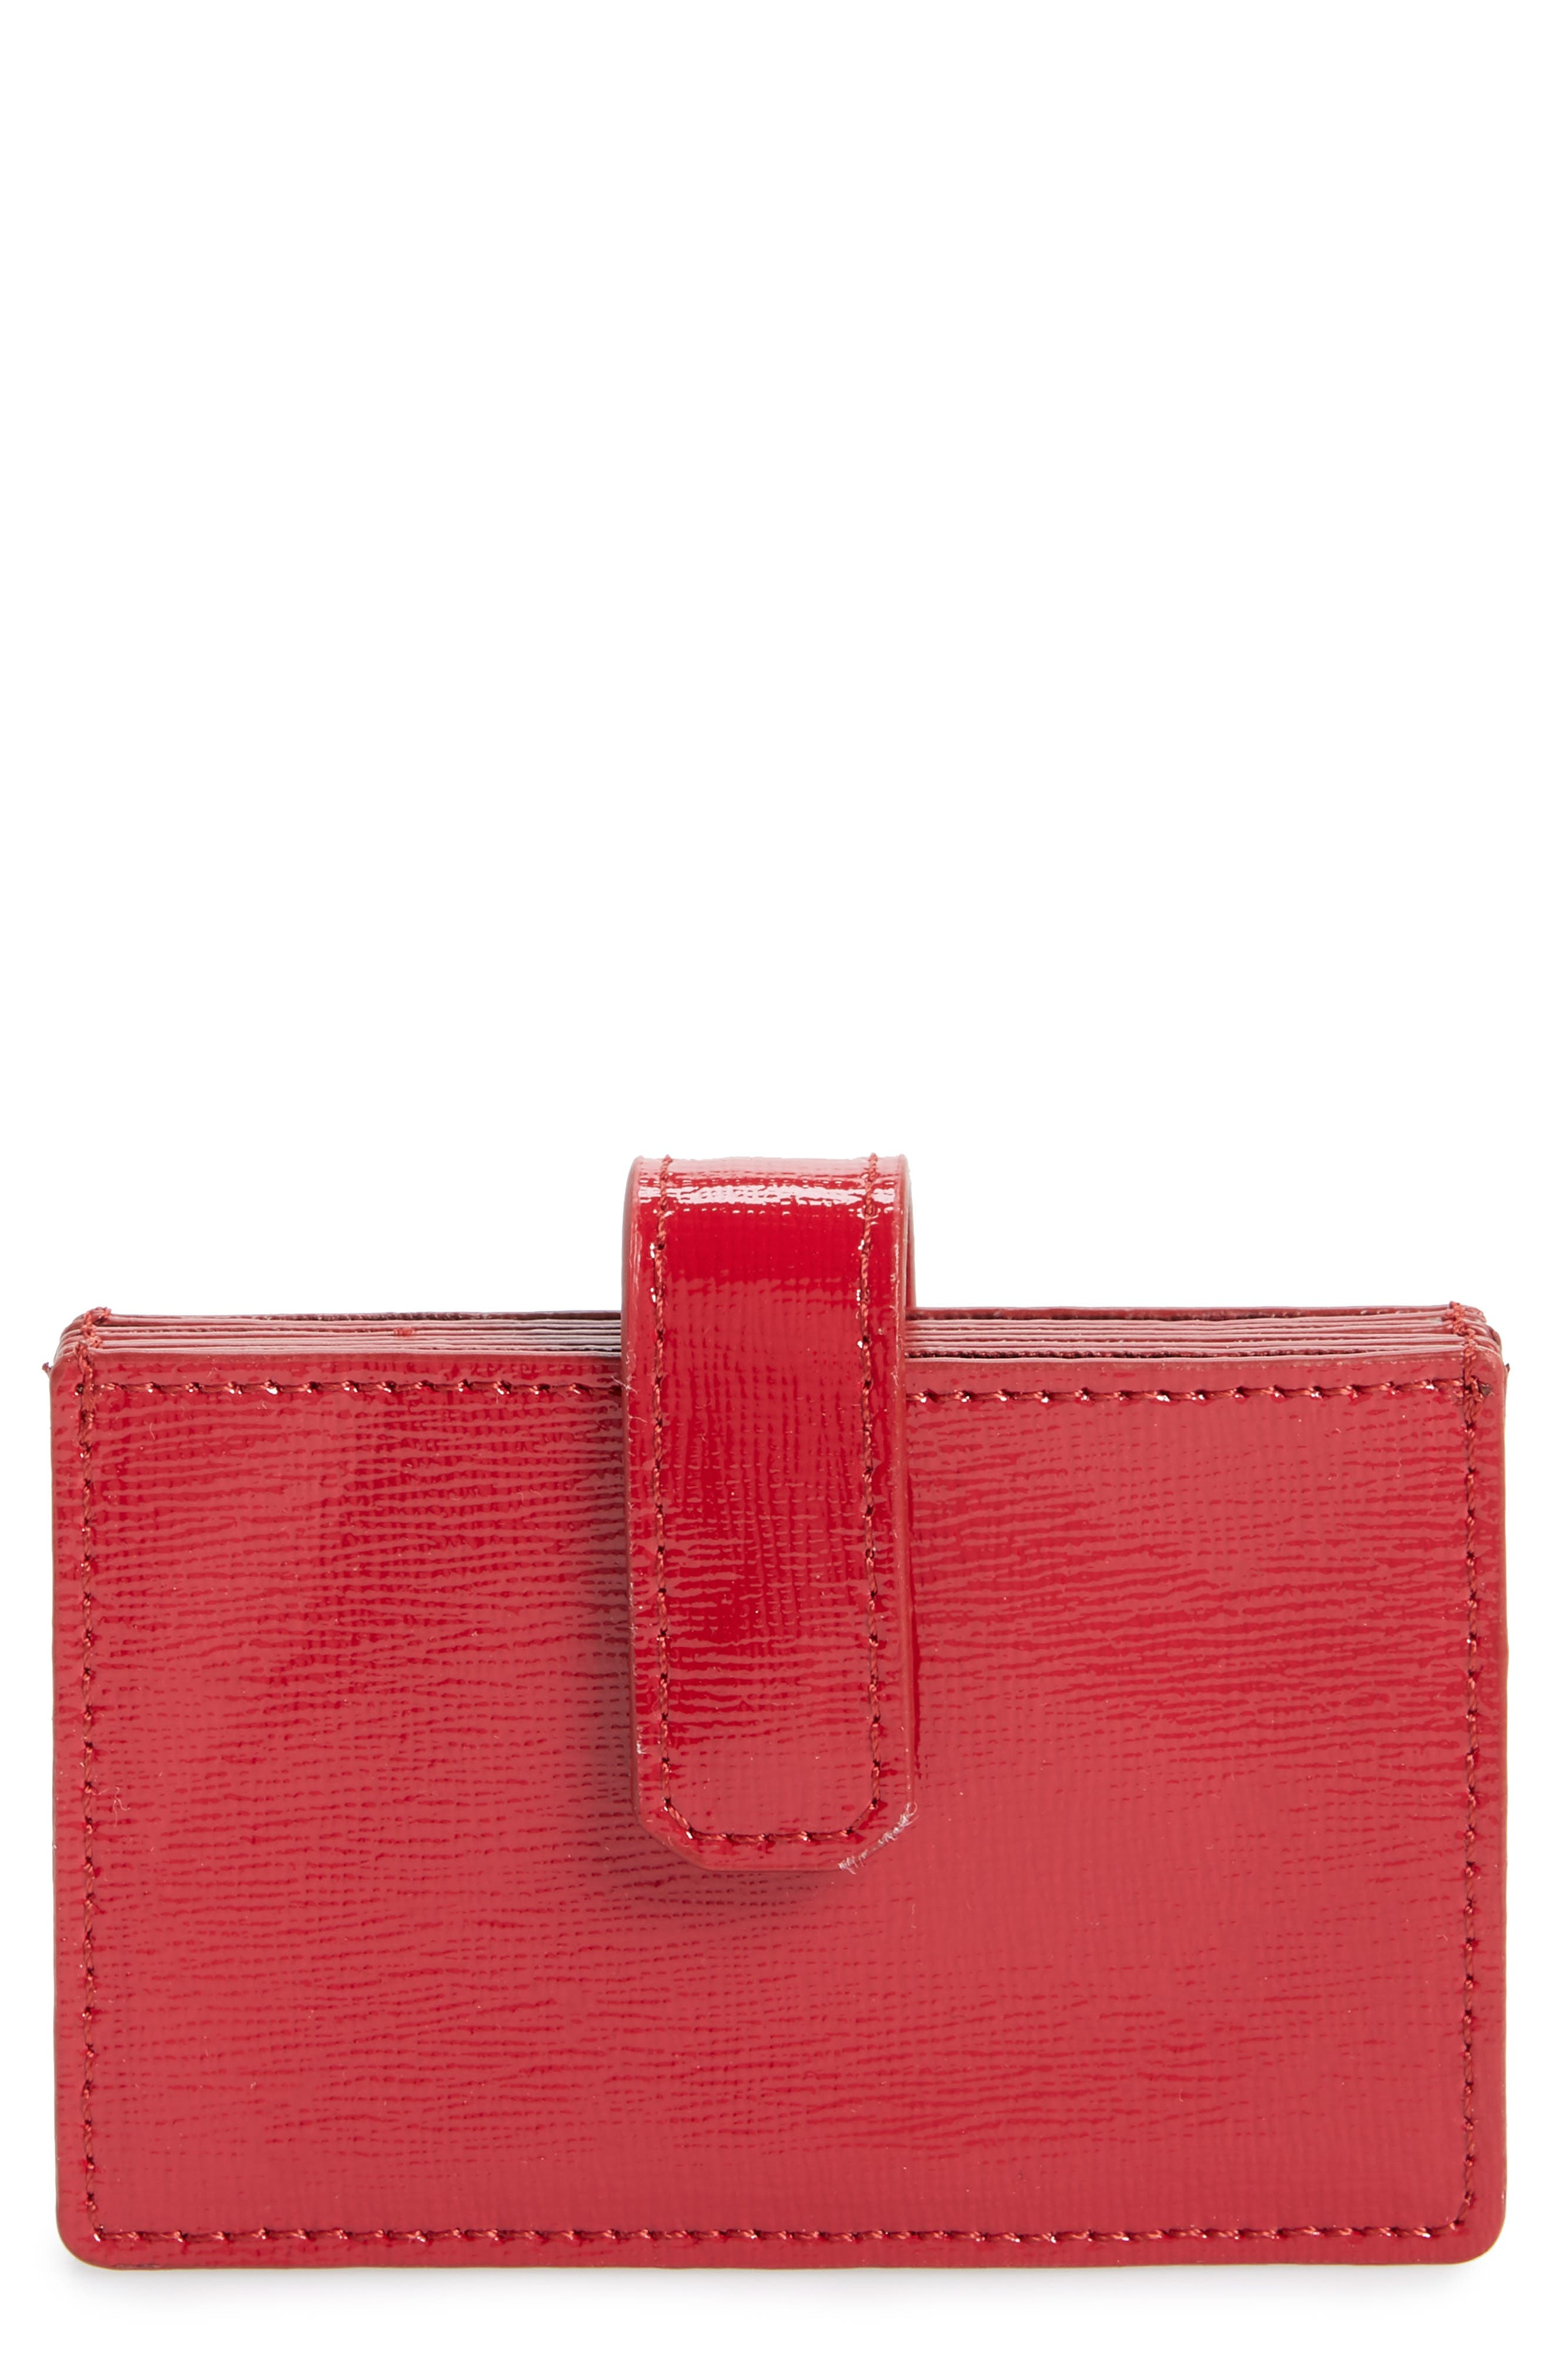 Accordion Leather Card Case,                         Main,                         color, RED JESTER